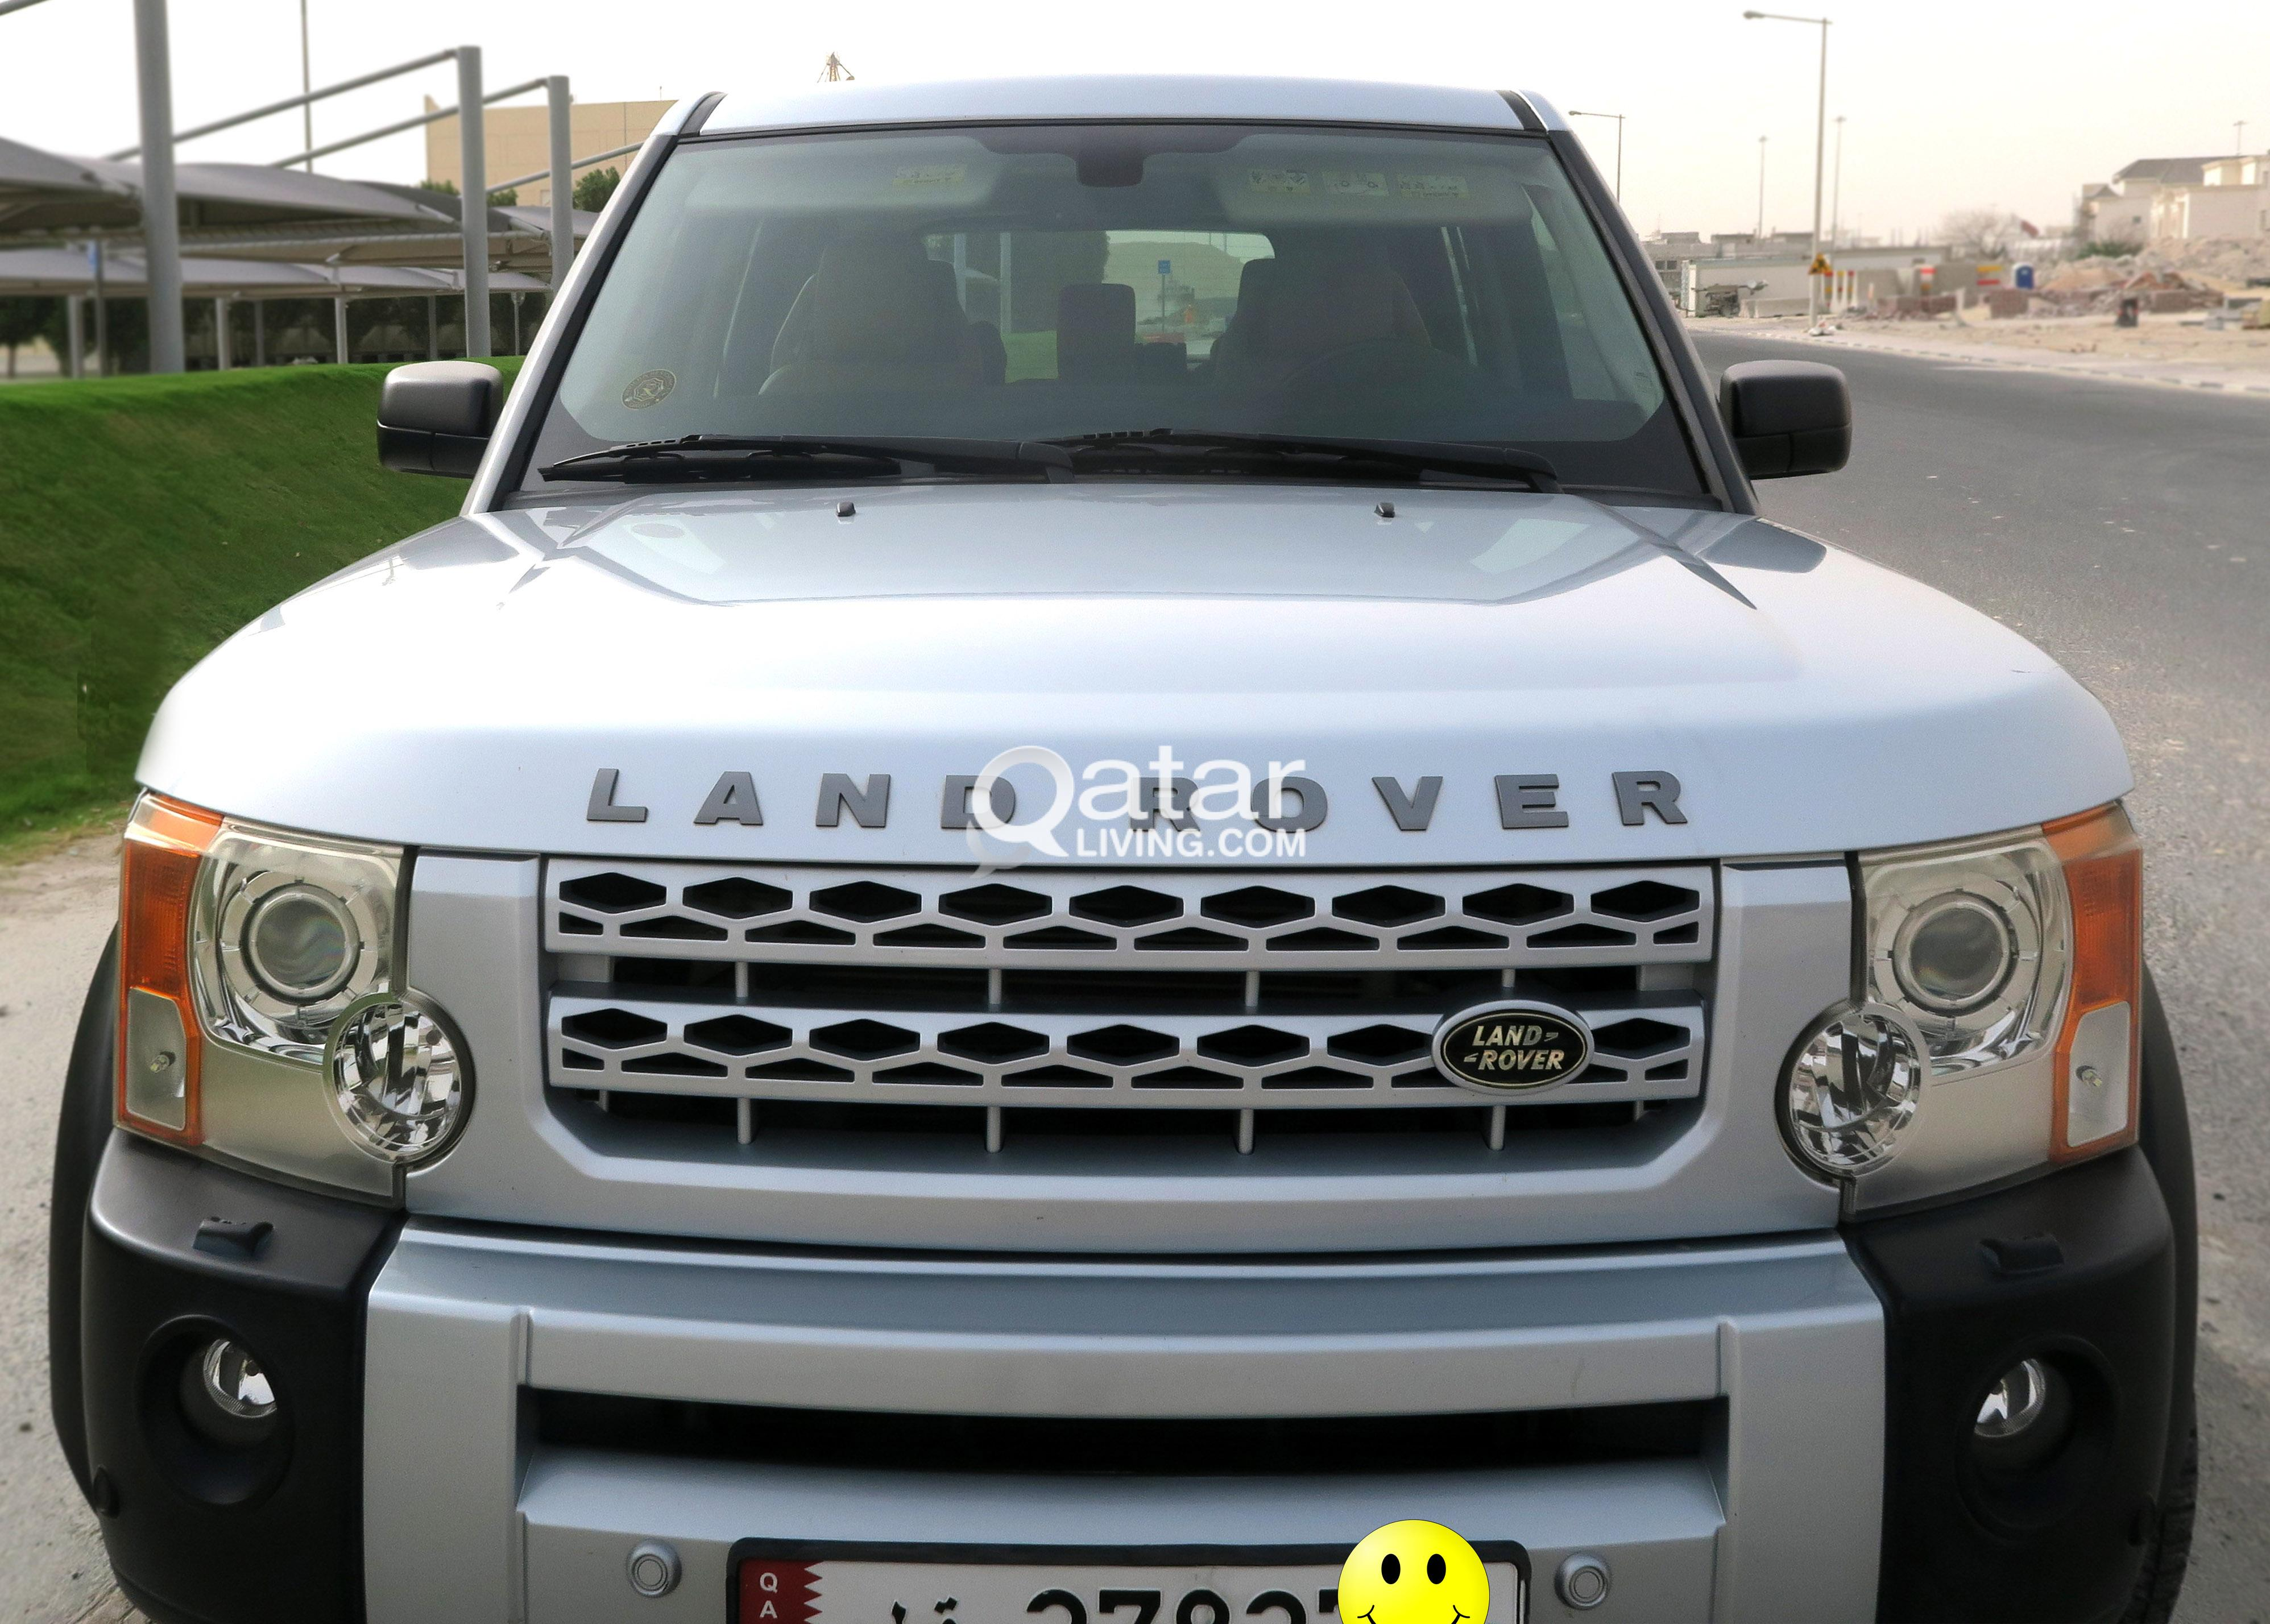 landrover alibaba light side get sport quotations parts guides range land marker com line at suspension deals allmakes clear shopping find rover compressor by on cheap